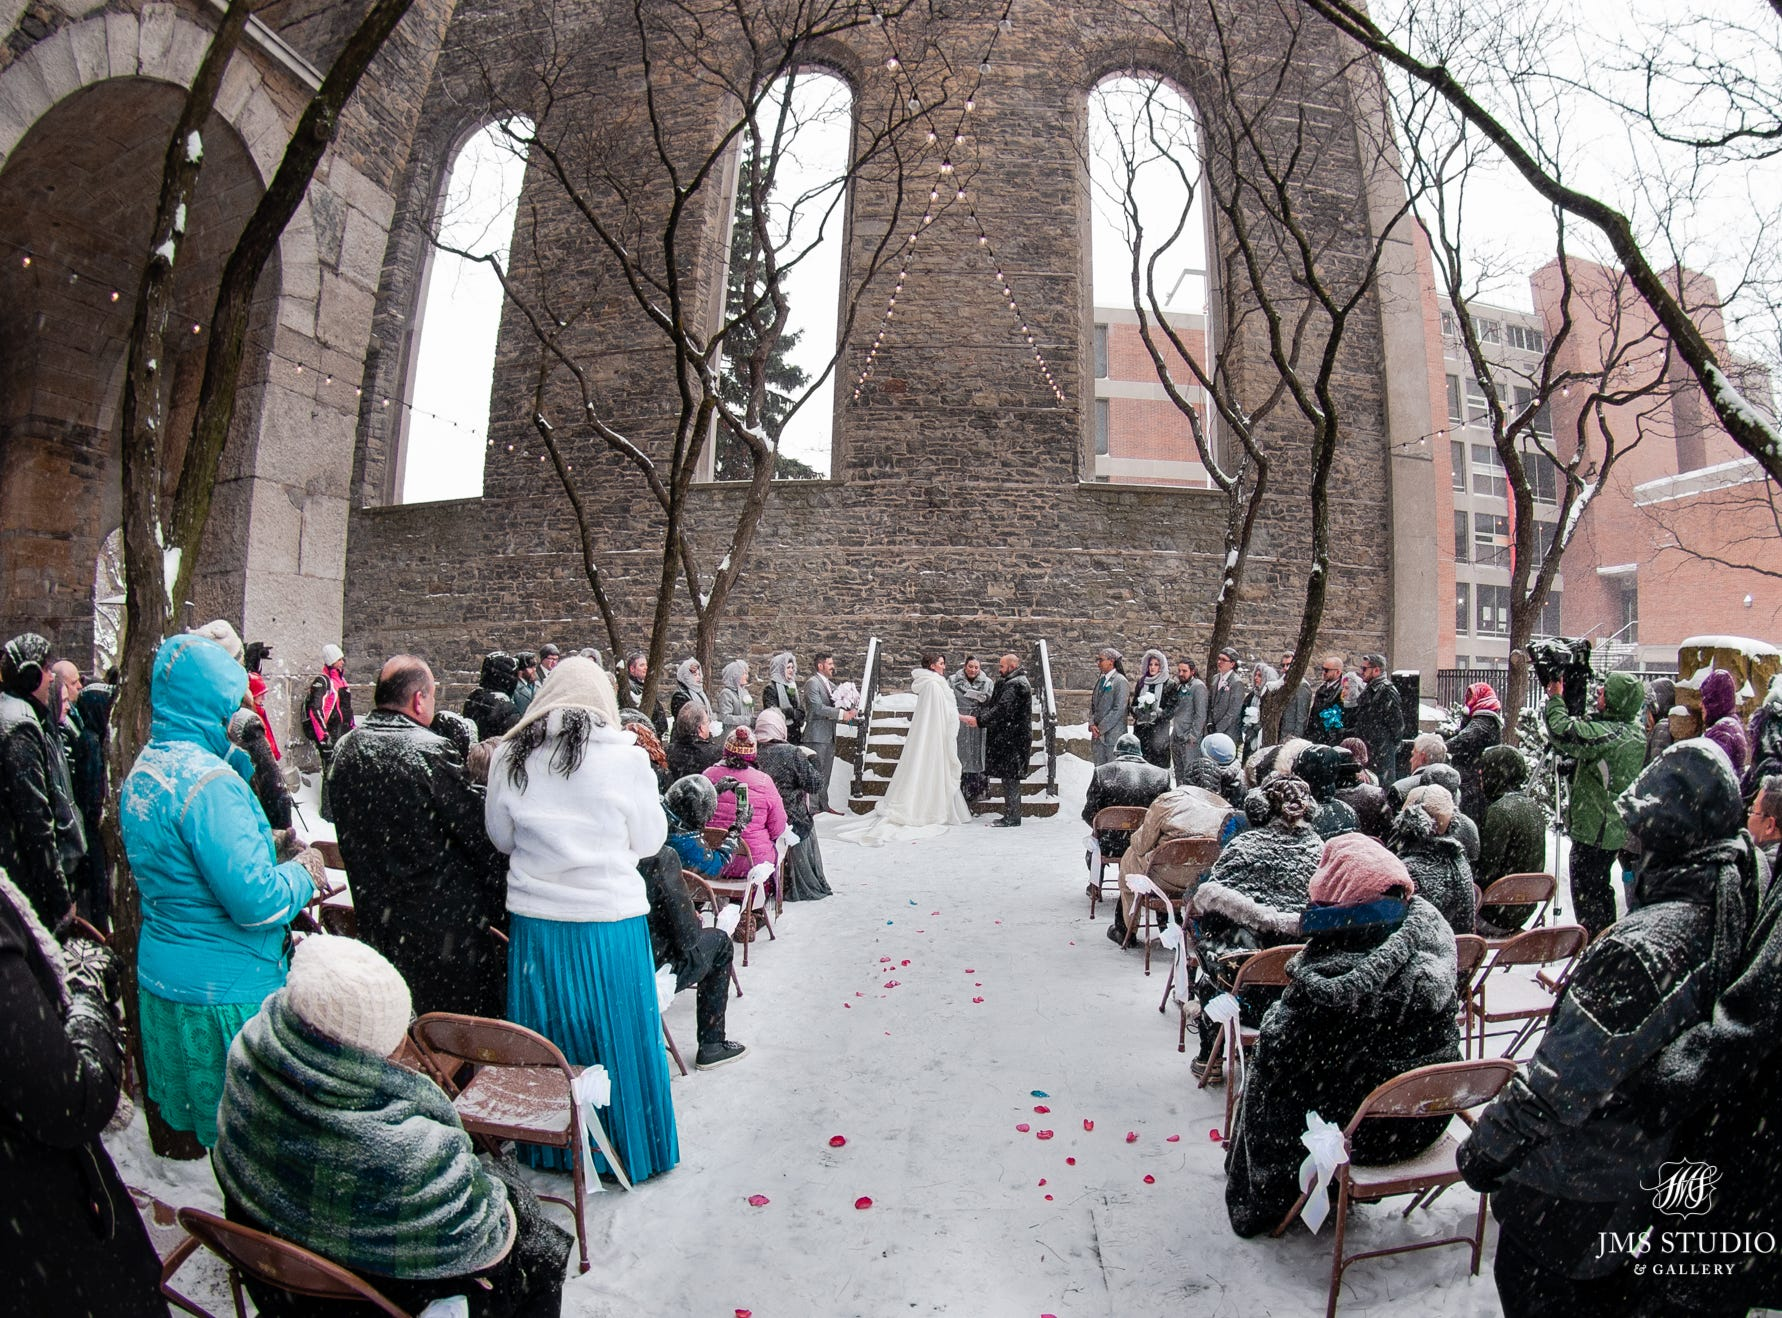 JMS Studio, which photographed the Sucy/Bragg wedding, said it was their first-ever outdoor wedding in January.